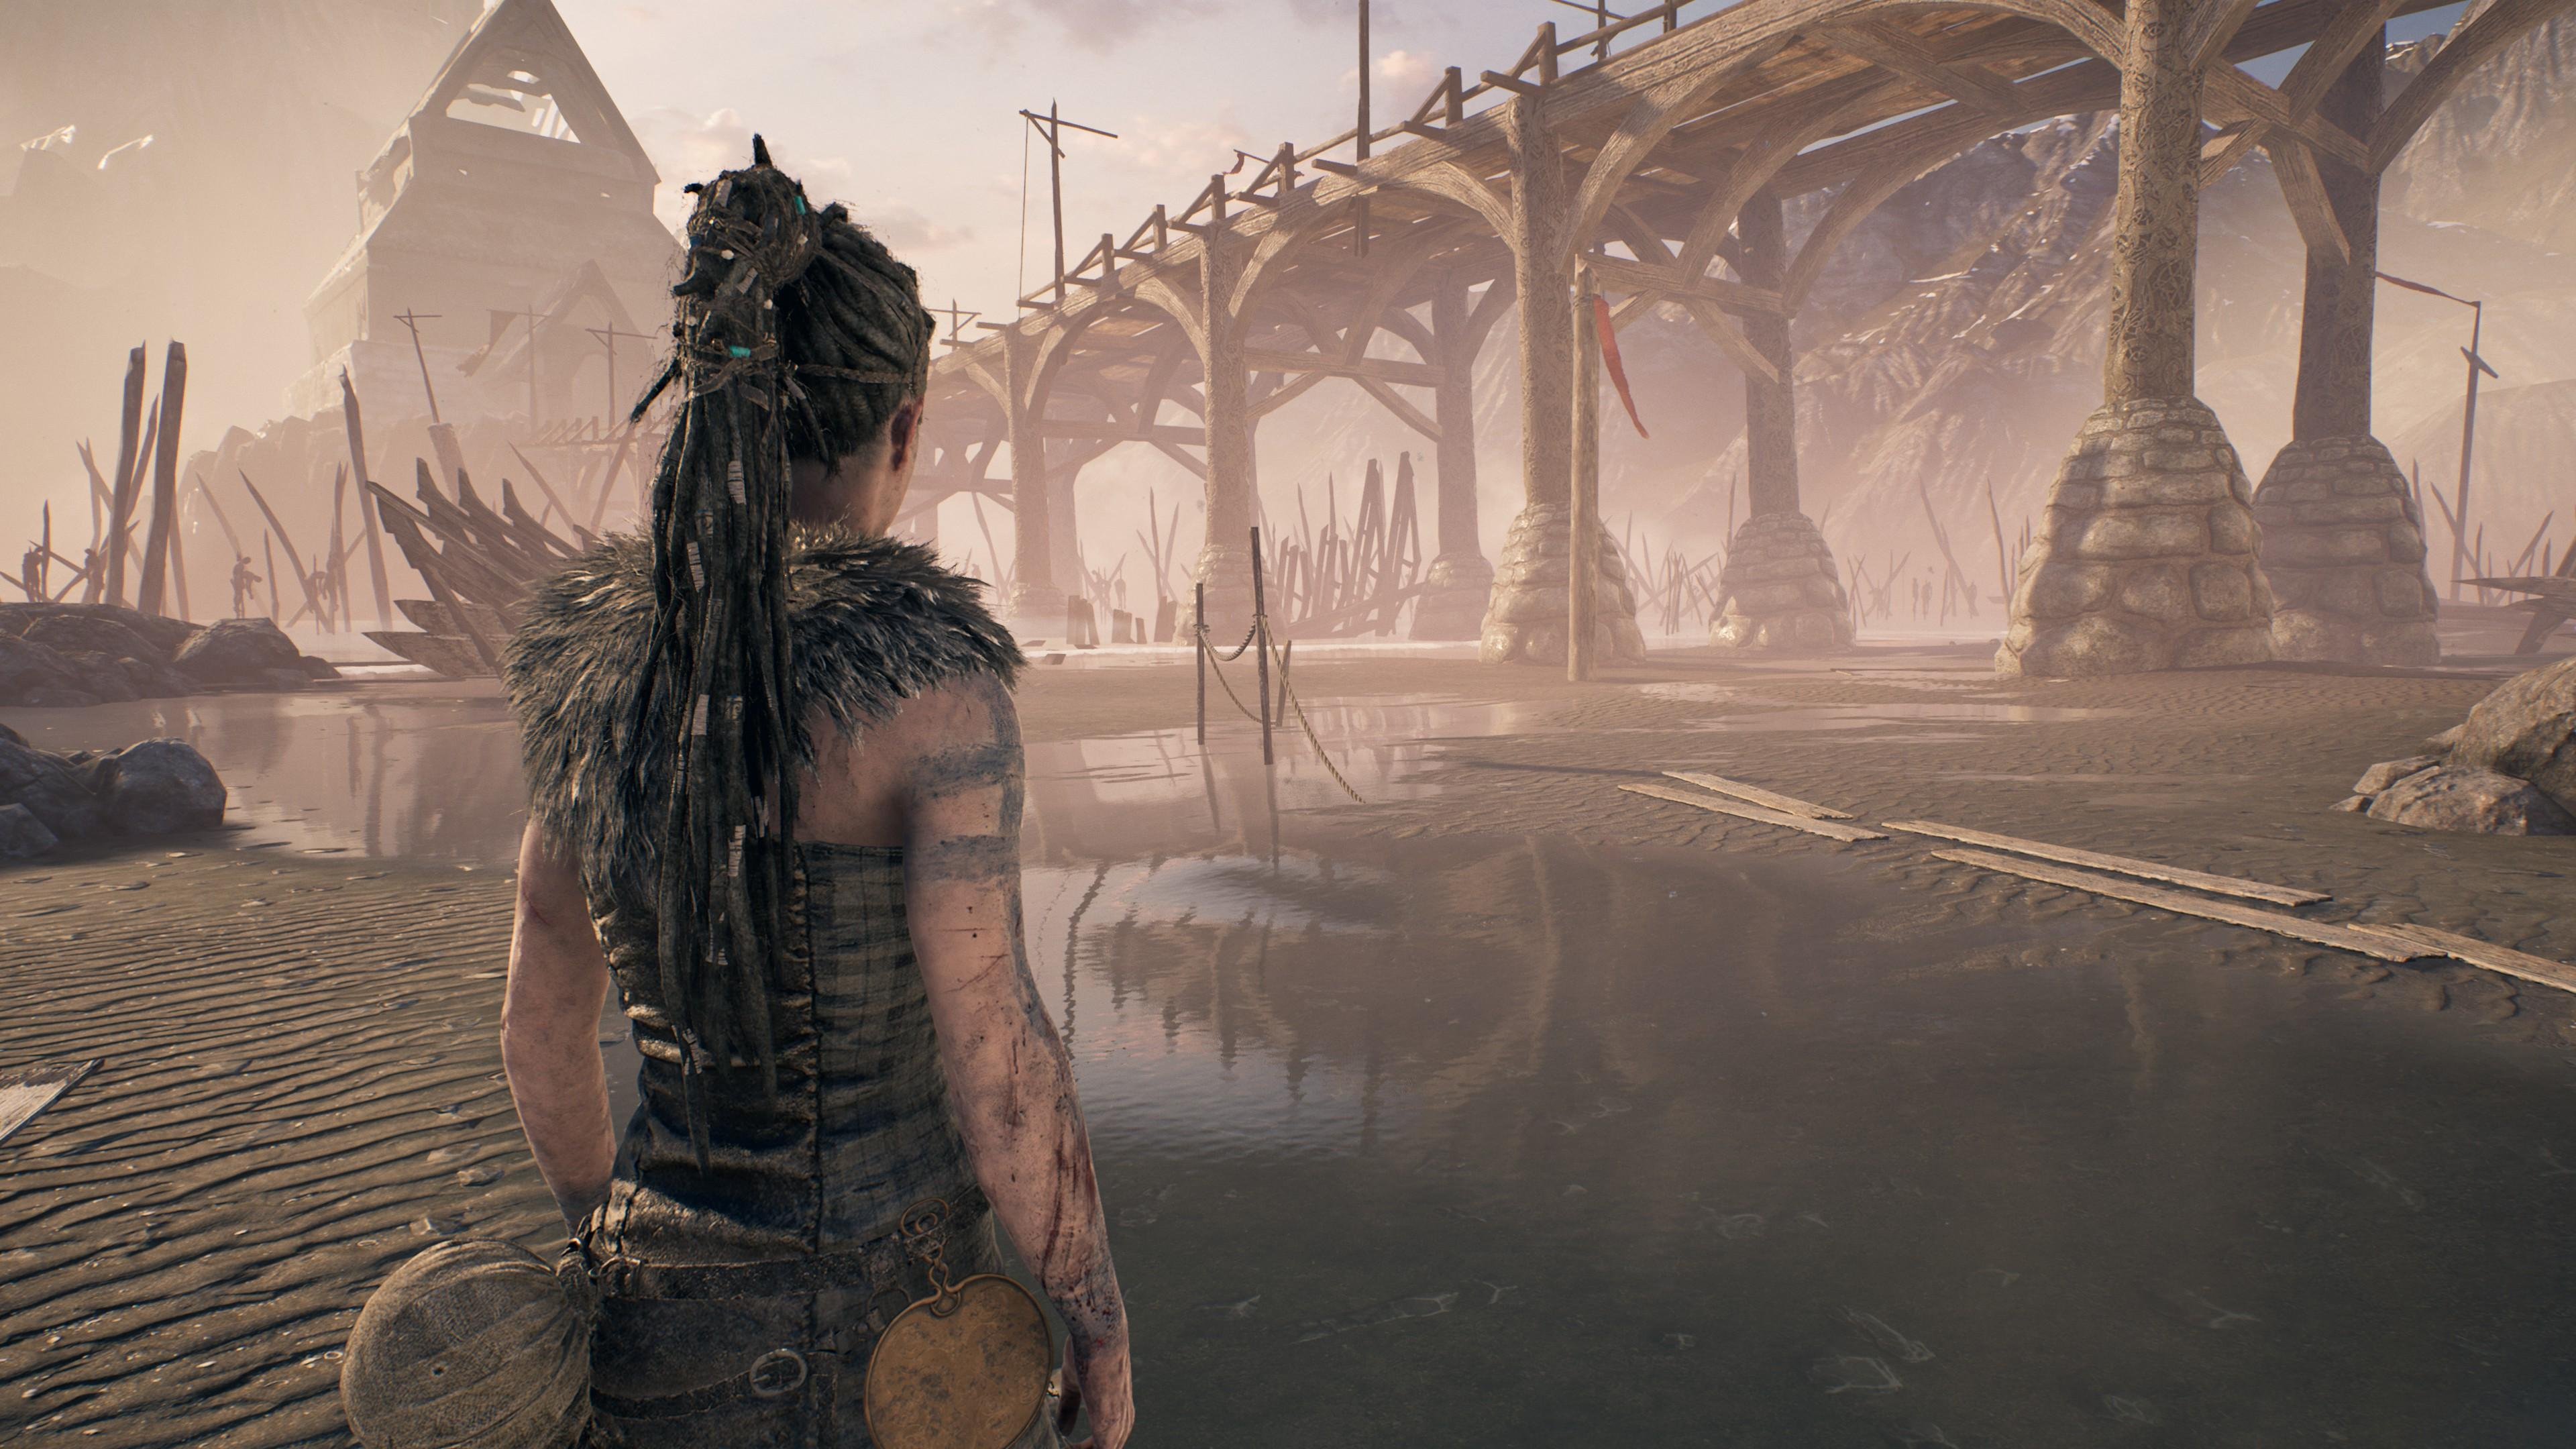 Hellblade is one of the finest games ever made and should not be missed